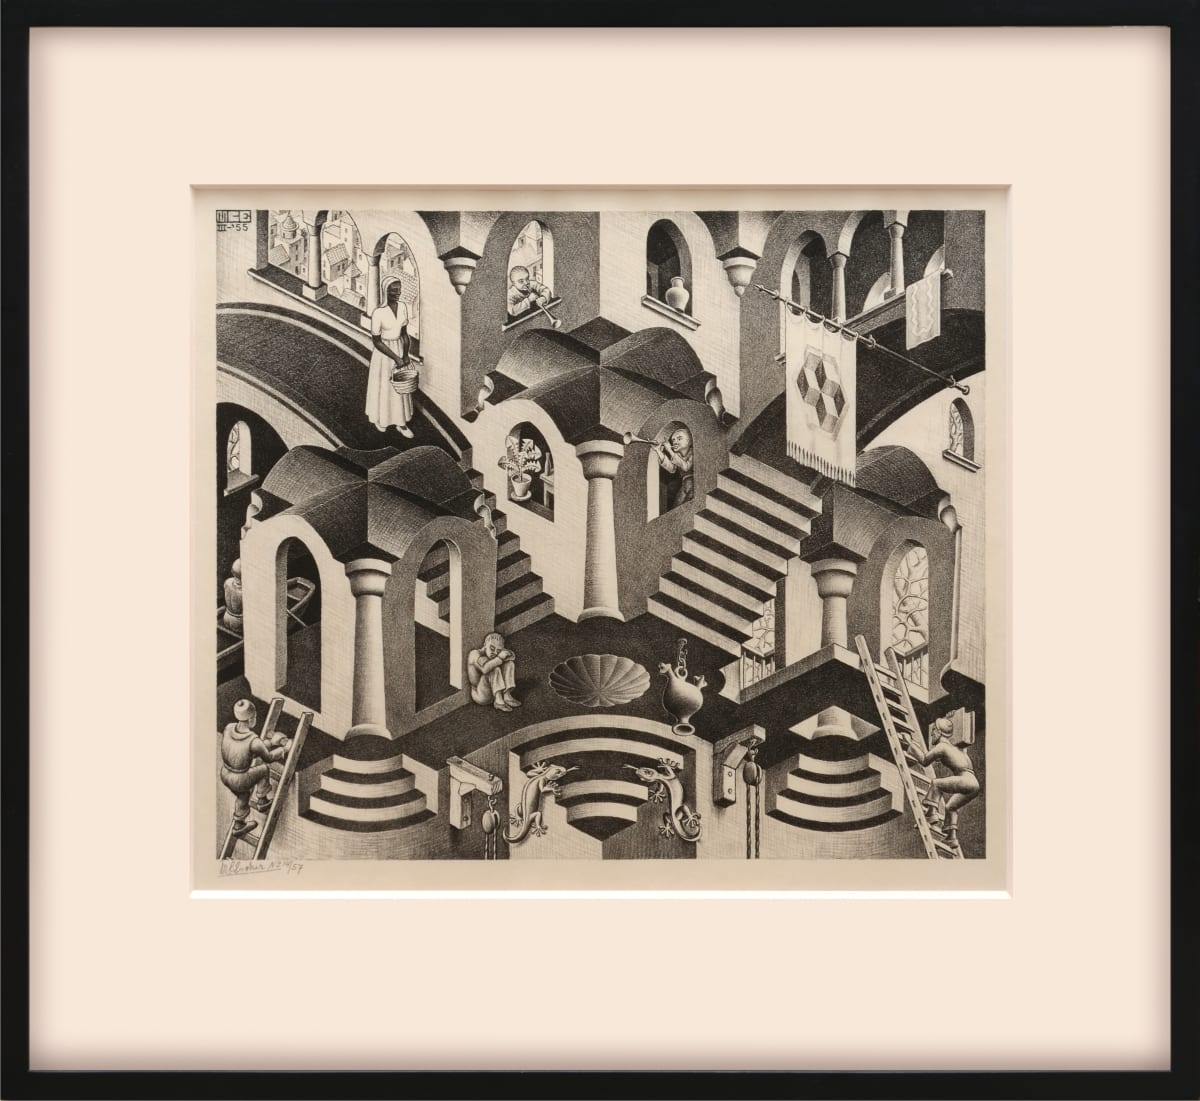 """M. C. Escher, Convex and Concave, 1955 Original lithrograph on woven paper 27.6 x 33.1 cm Edition of 57 Convex and Concave is concerned with the widely known phenomenon of spatial suggestion which can be imagined as convex or concave, as desired. In the middle of the picture Escher draws the shapes in such a way that the observer may just as well see them convex as concave; to the right he forces you to see things in a convex way (e.g. """"cube from the outside""""); to the left, you have to view things in a concave way (""""cube from the inside"""")."""